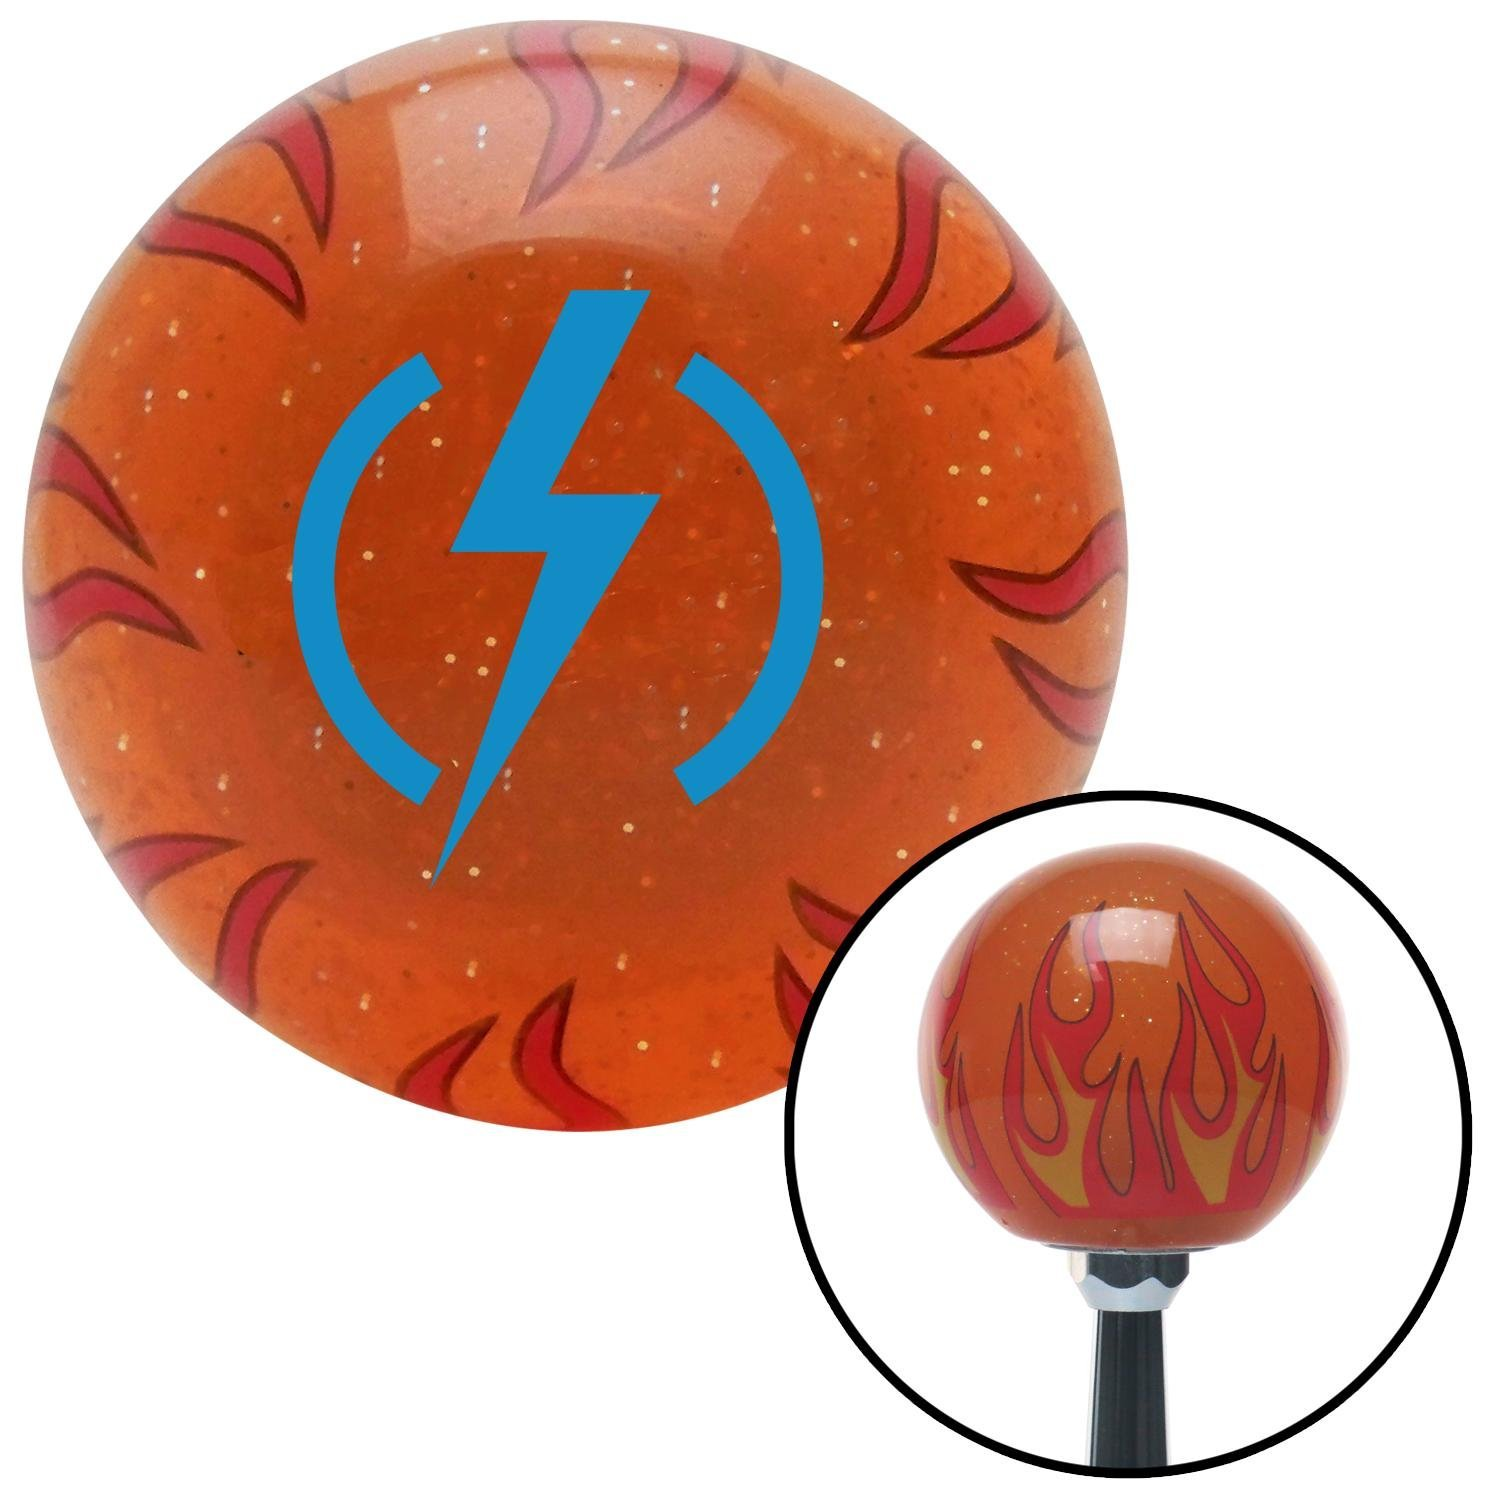 Blue Bolt American Shifter 252359 Orange Flame Metal Flake Shift Knob with M16 x 1.5 Insert